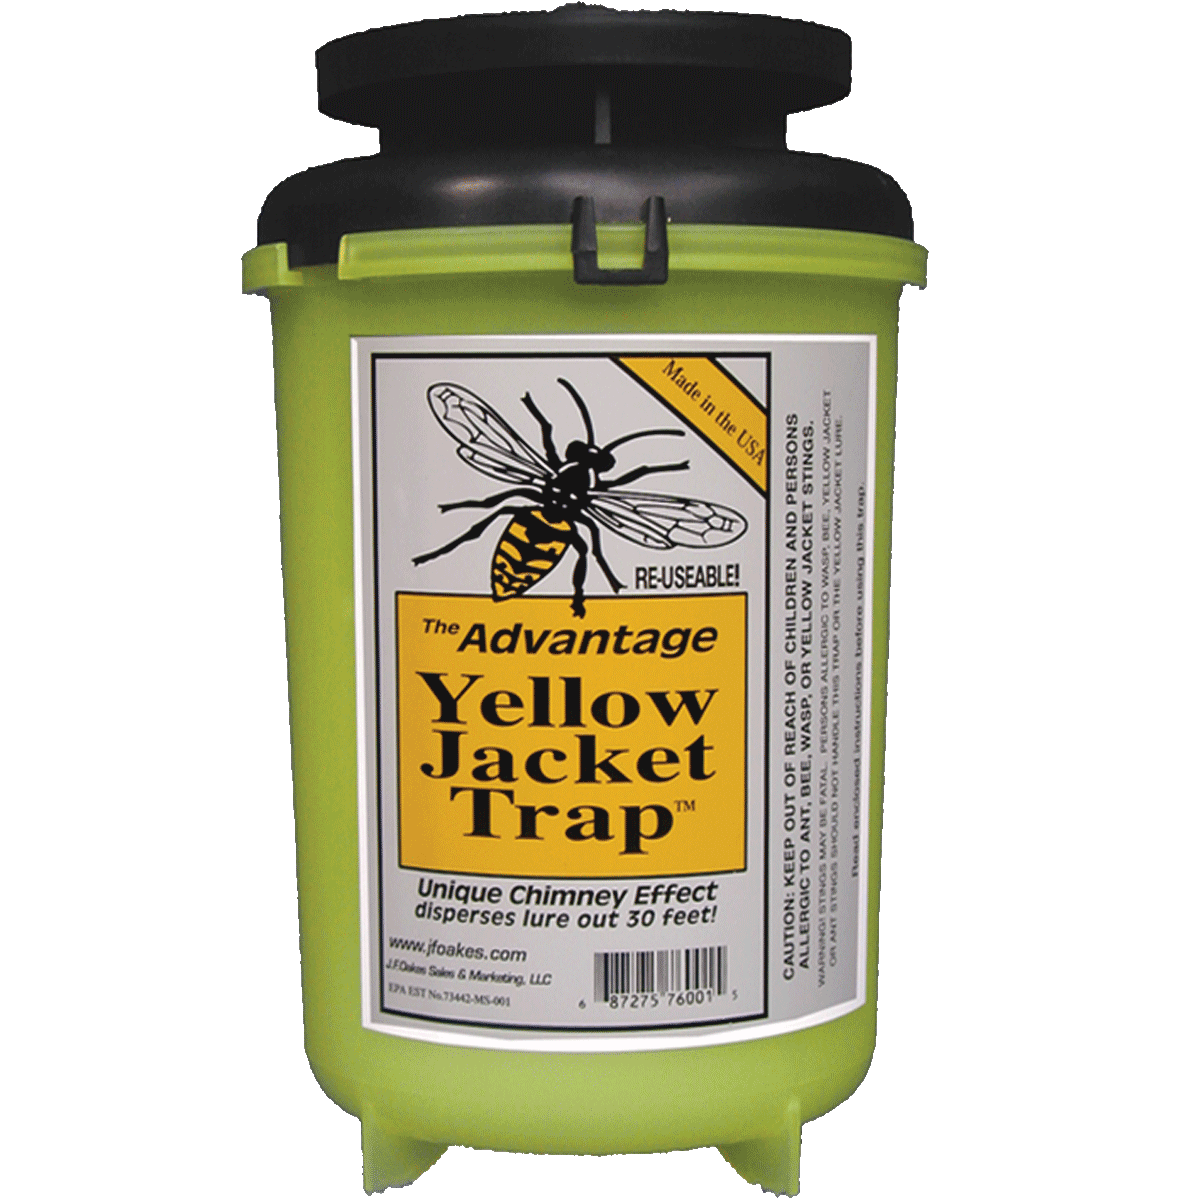 The Advantage Yellow Jacket Trap